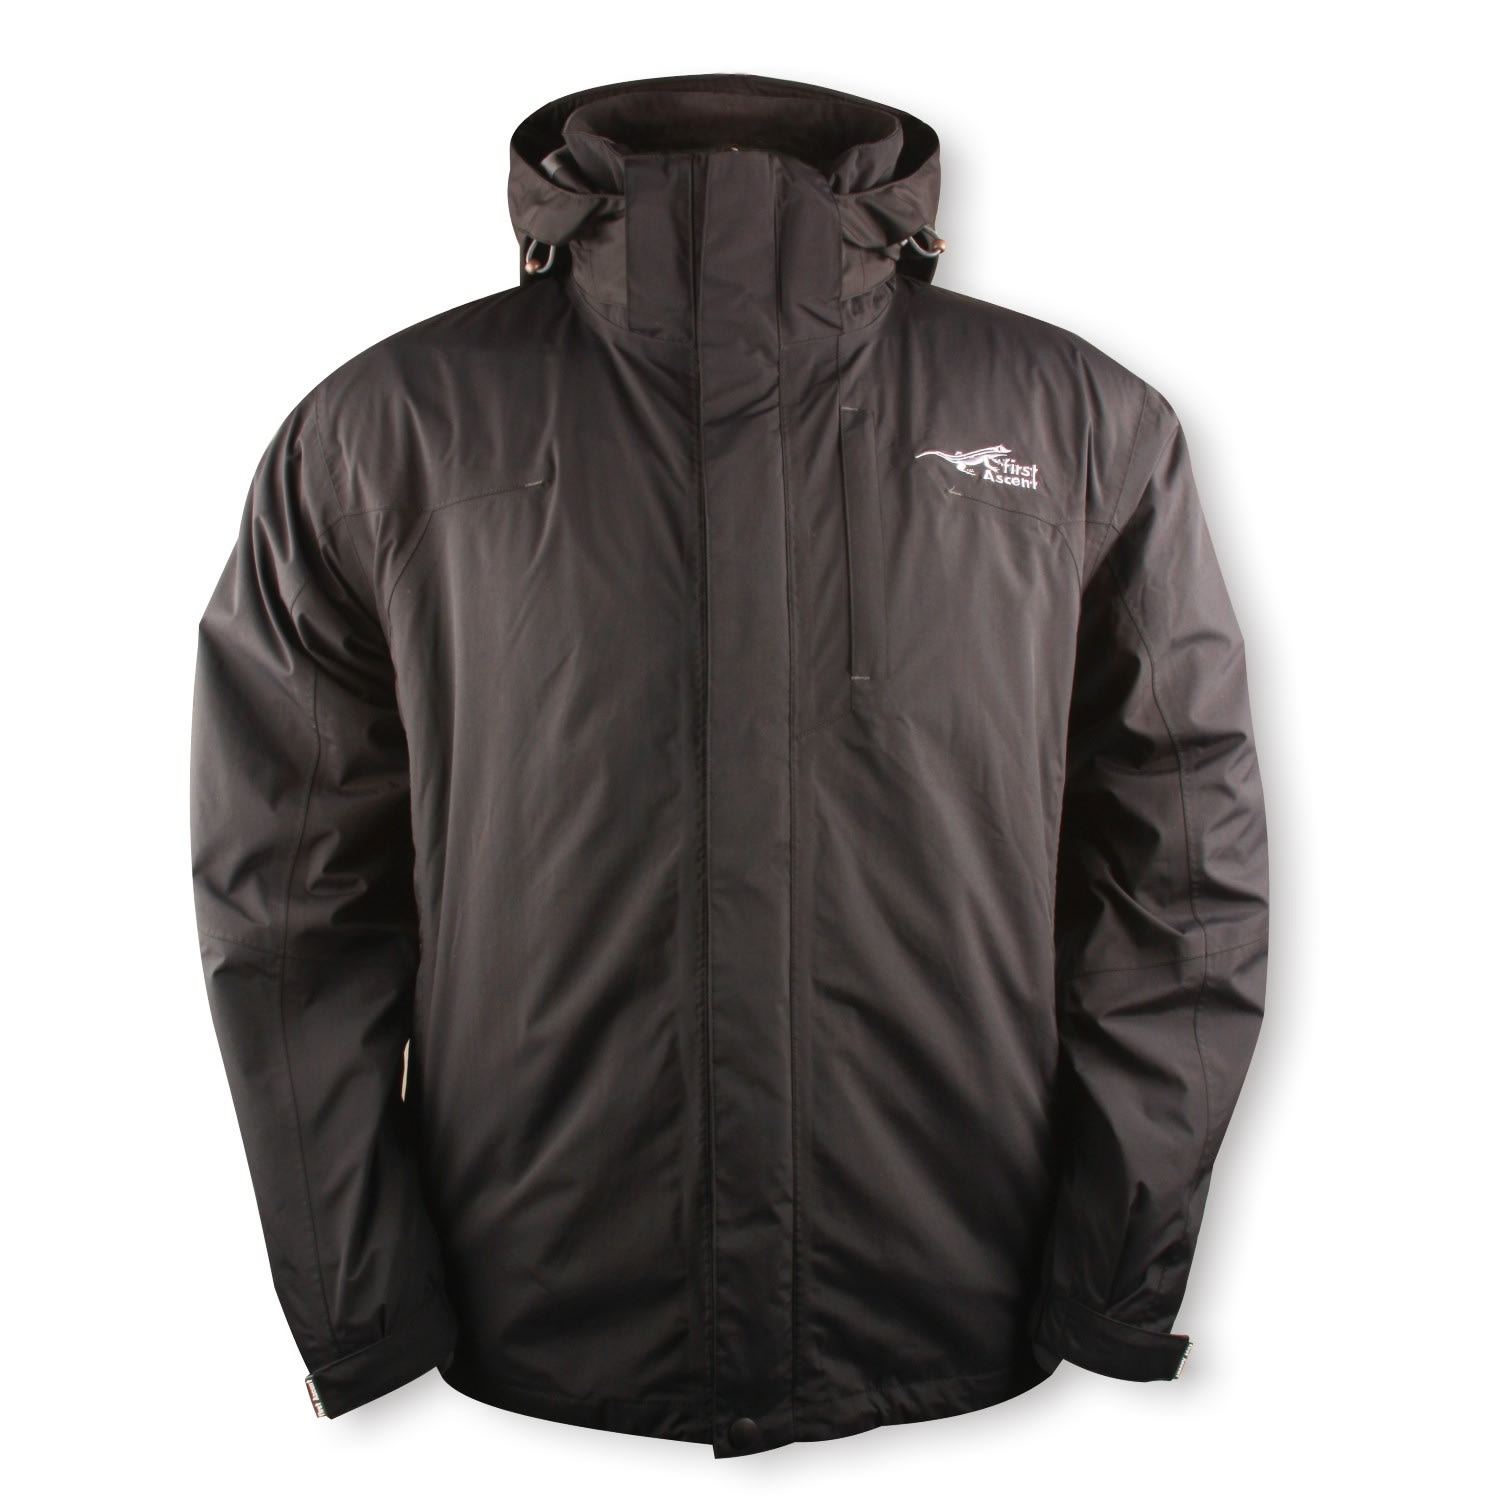 First Ascent Men's Discovery 3 in 1 Interconnect Jacket